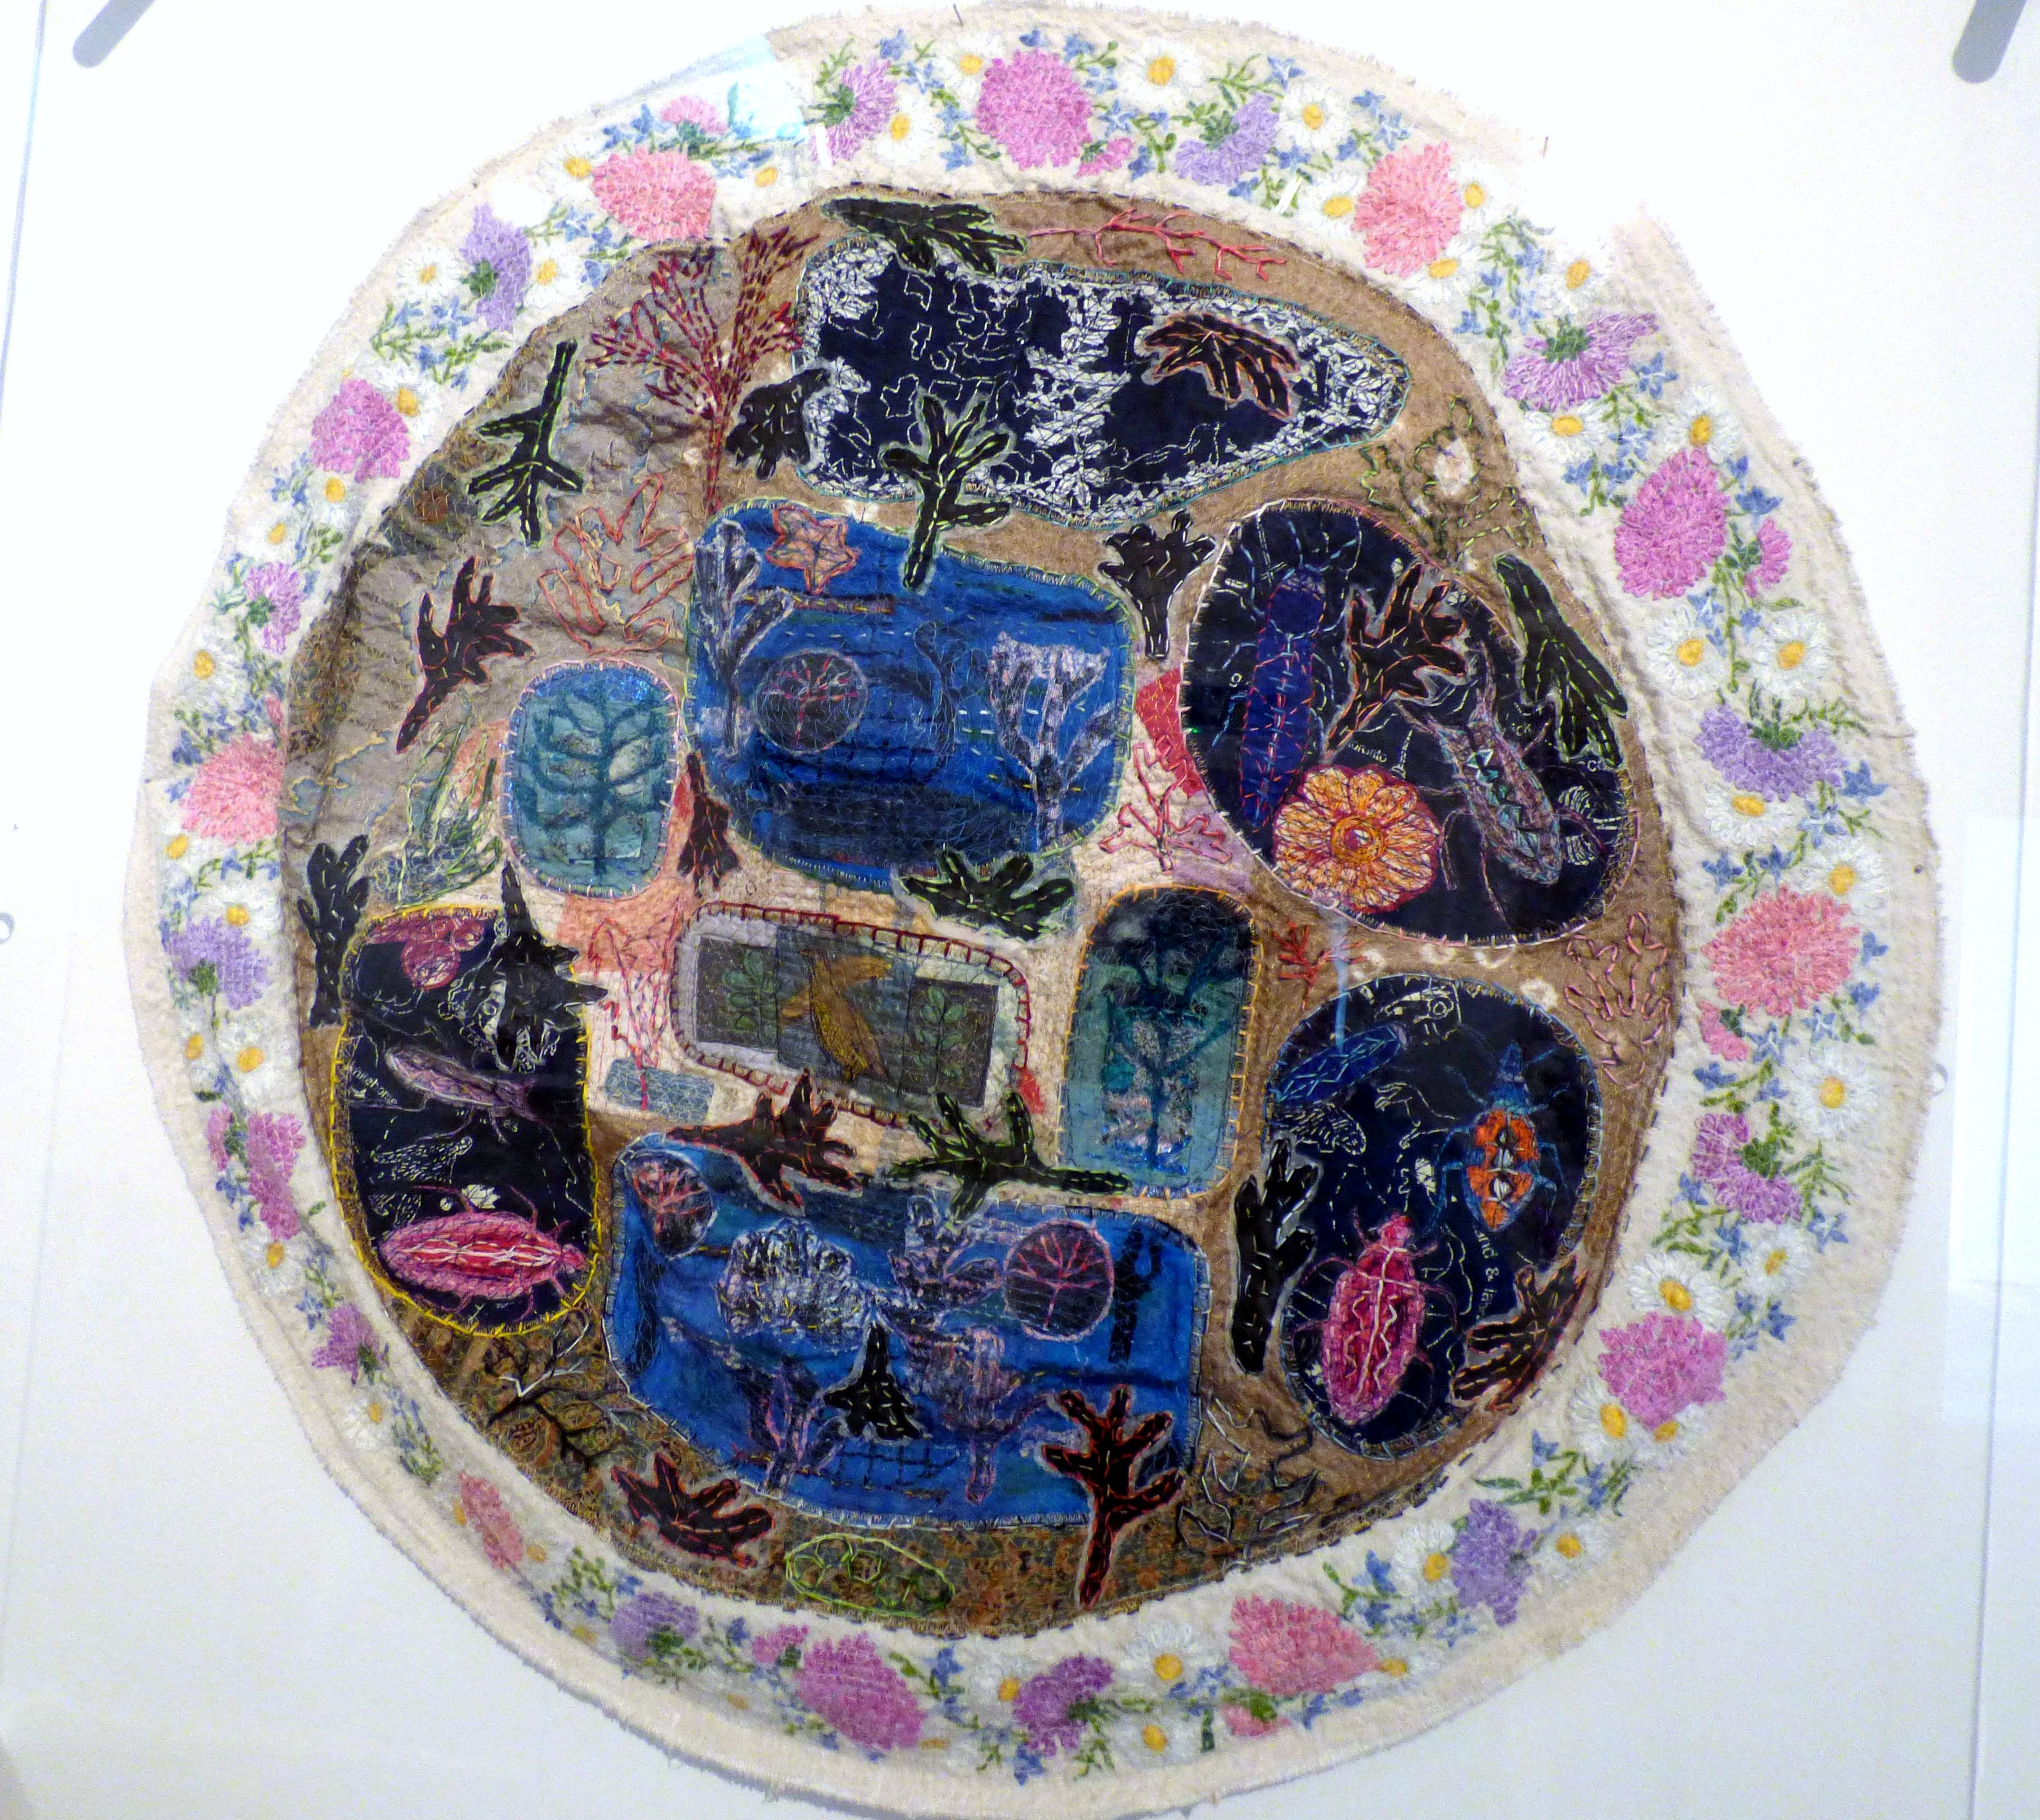 UNDERSEA, mixed media textiles by Anne Kelly, Ruthin Craft gallery, July 2021